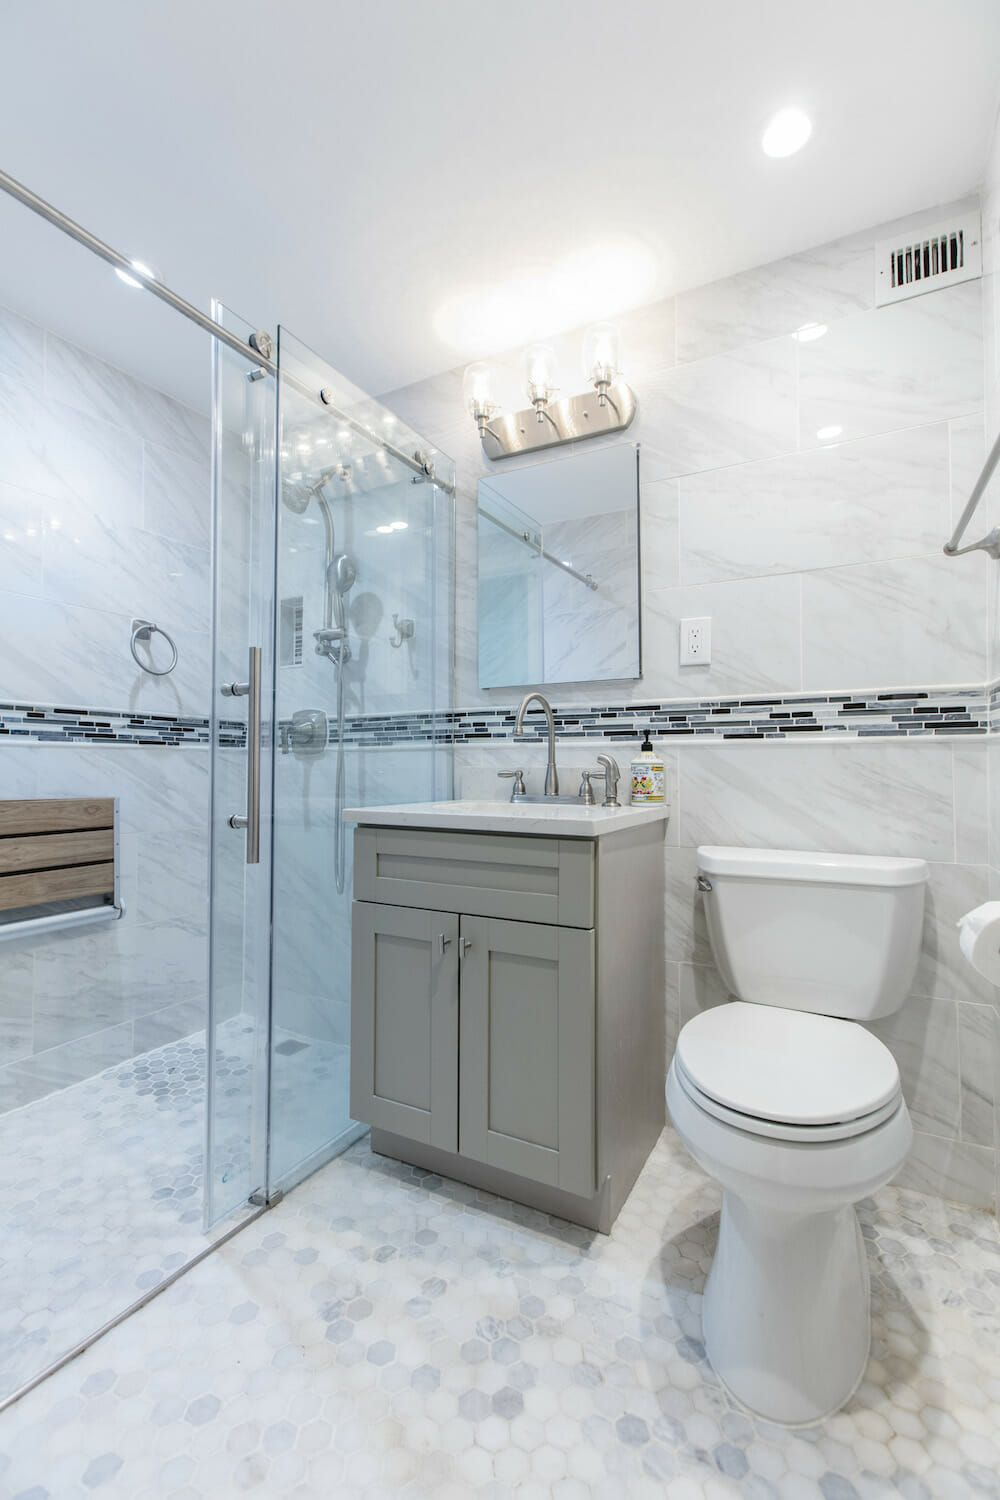 Take A Look At The Best Bathroom Trends Of 2019 With Images Shower Remodel Bathroom Trends Big Bathrooms